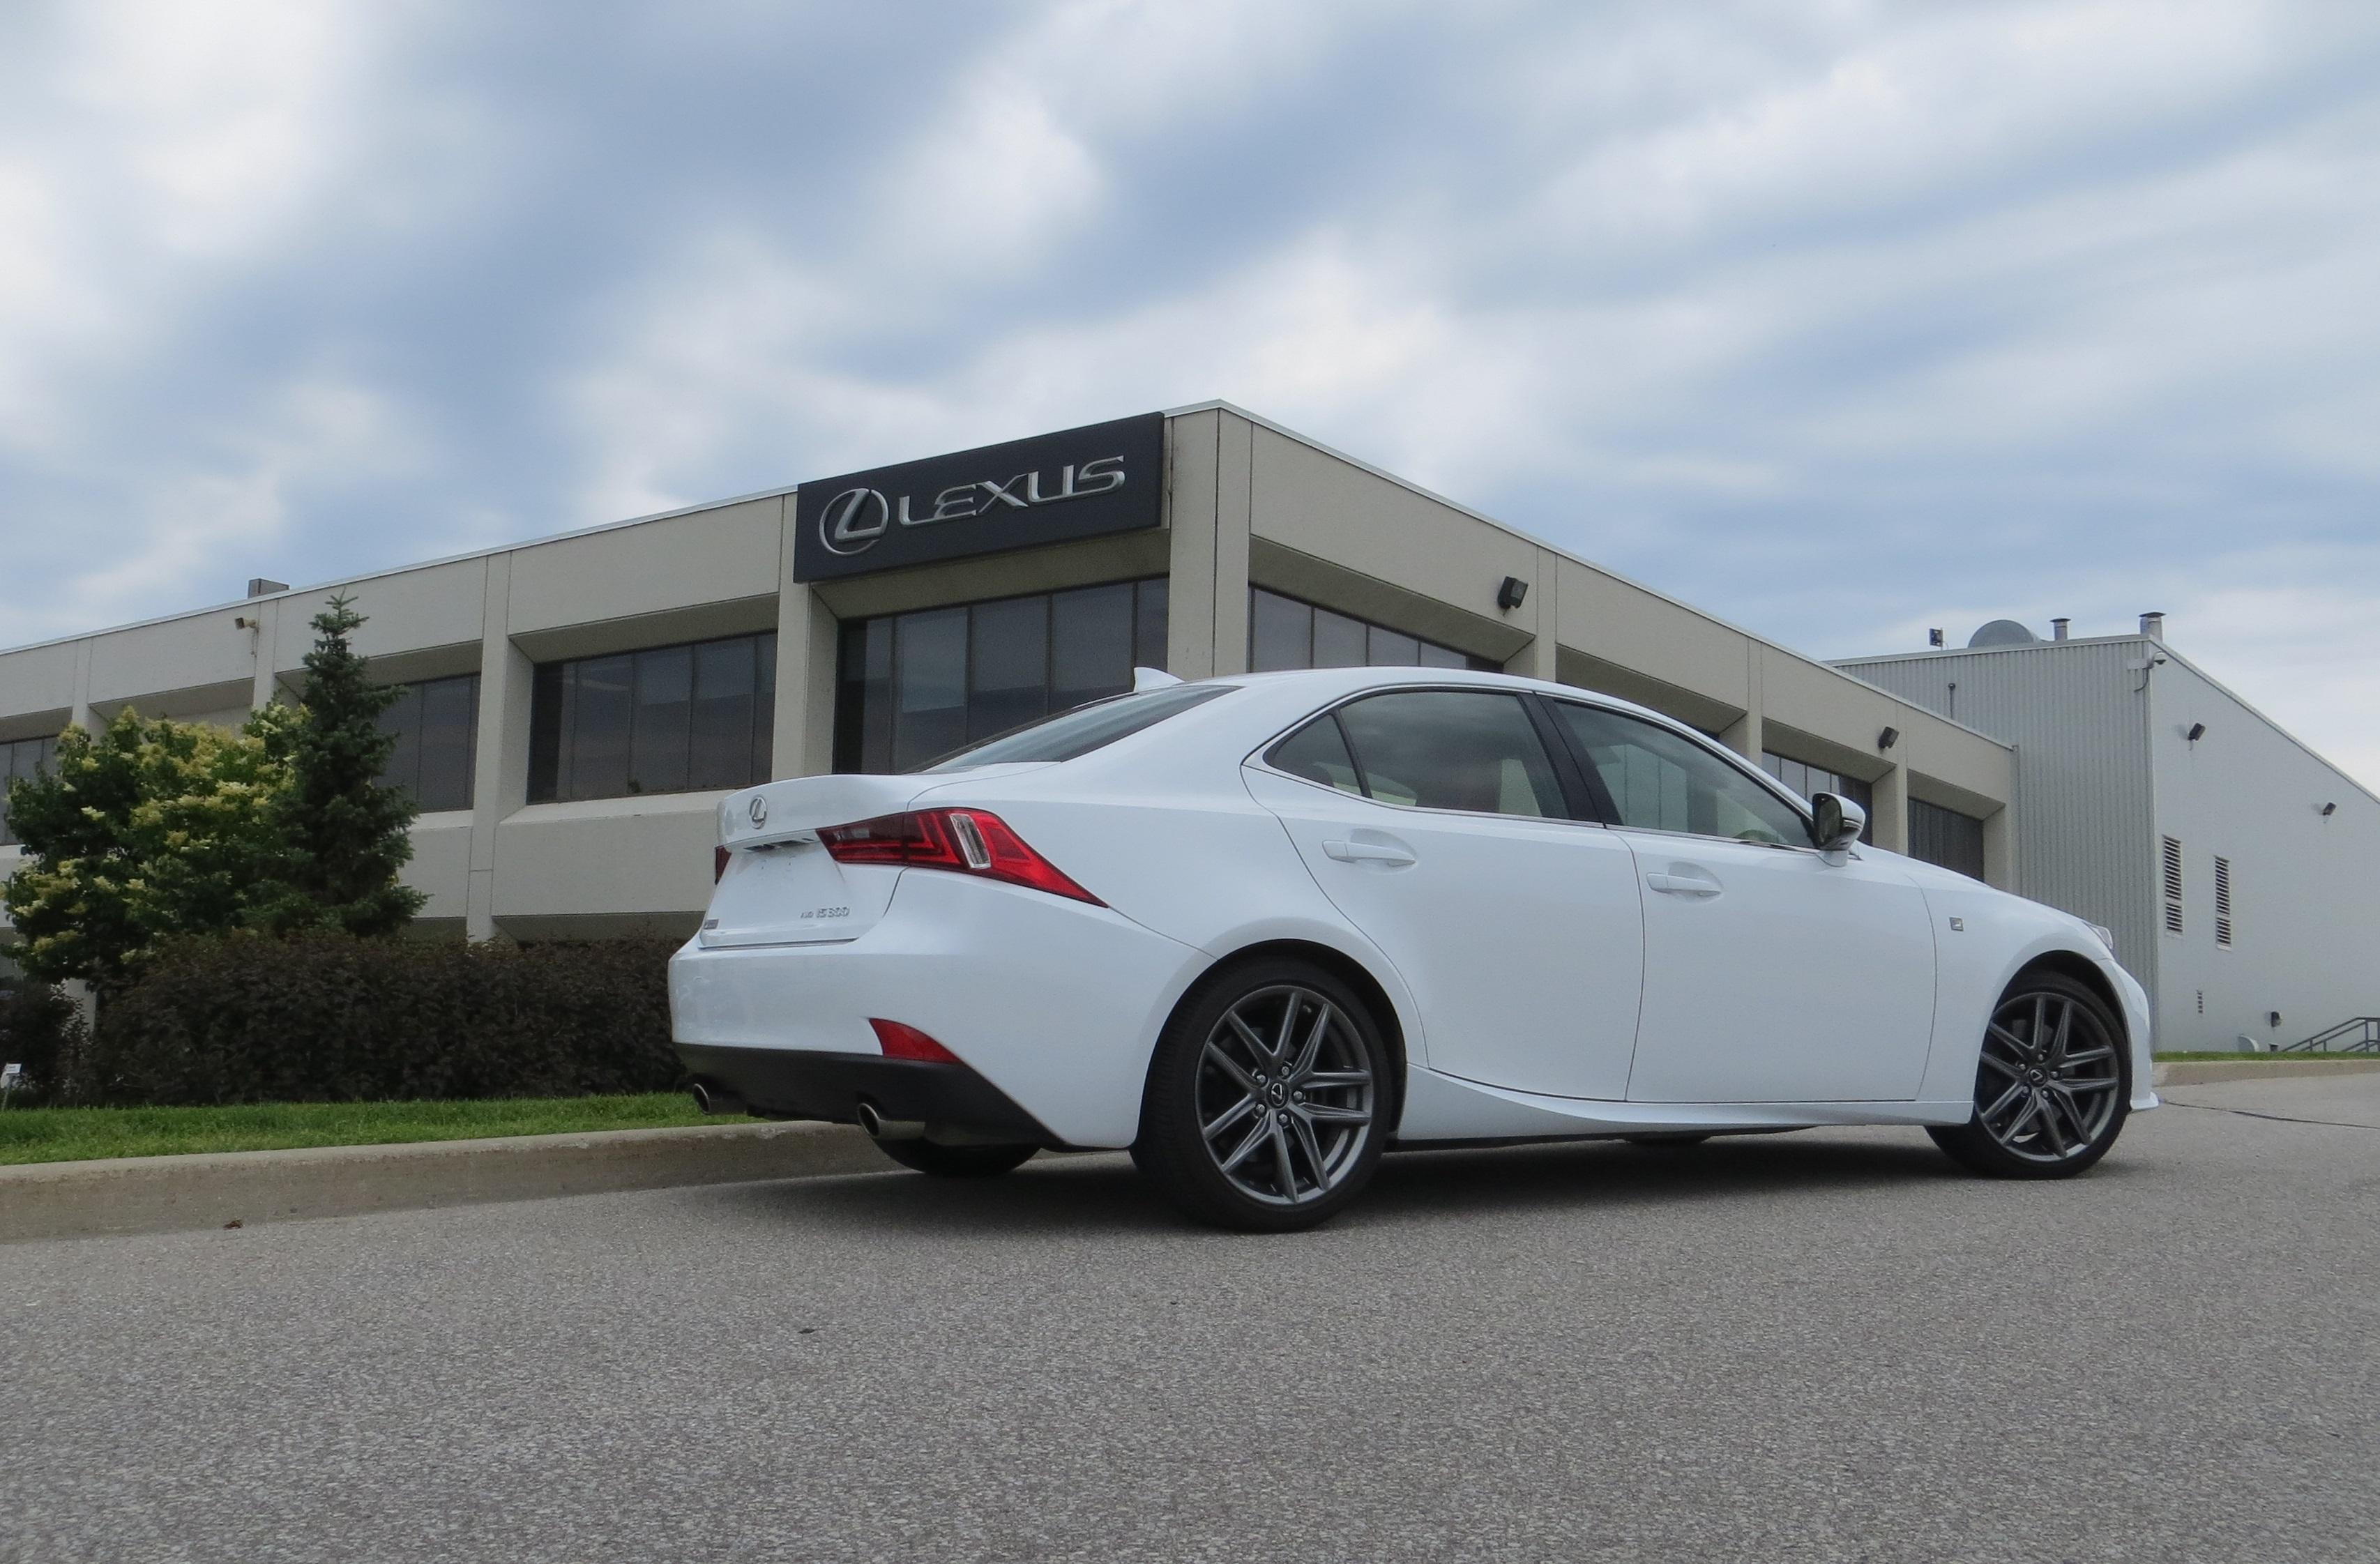 Lexus Announced 2016 IS300 AWD YouWheel Your Ultimate and